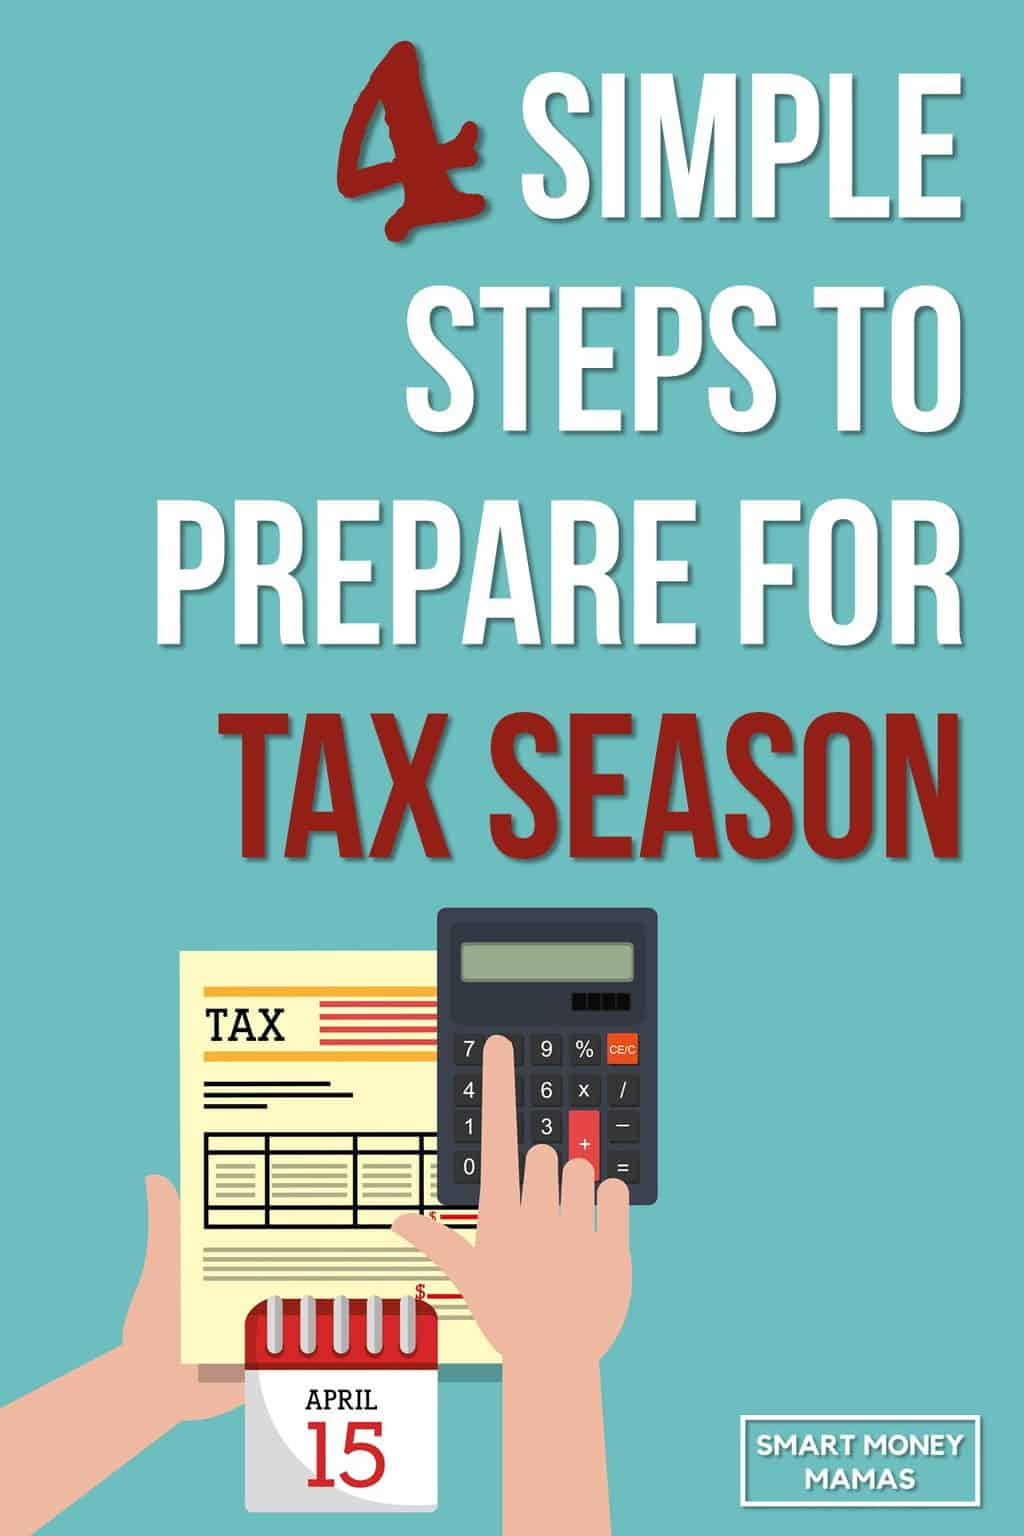 I know tax season is at the same time every year, yet it always somehow seems like a scramble. Awesome to read some quick tips from an expert on getting organized for tax season. Hopefully it saves us some money (and sanity)! #taxes #savemoney #taxseason #smartmoneymamas